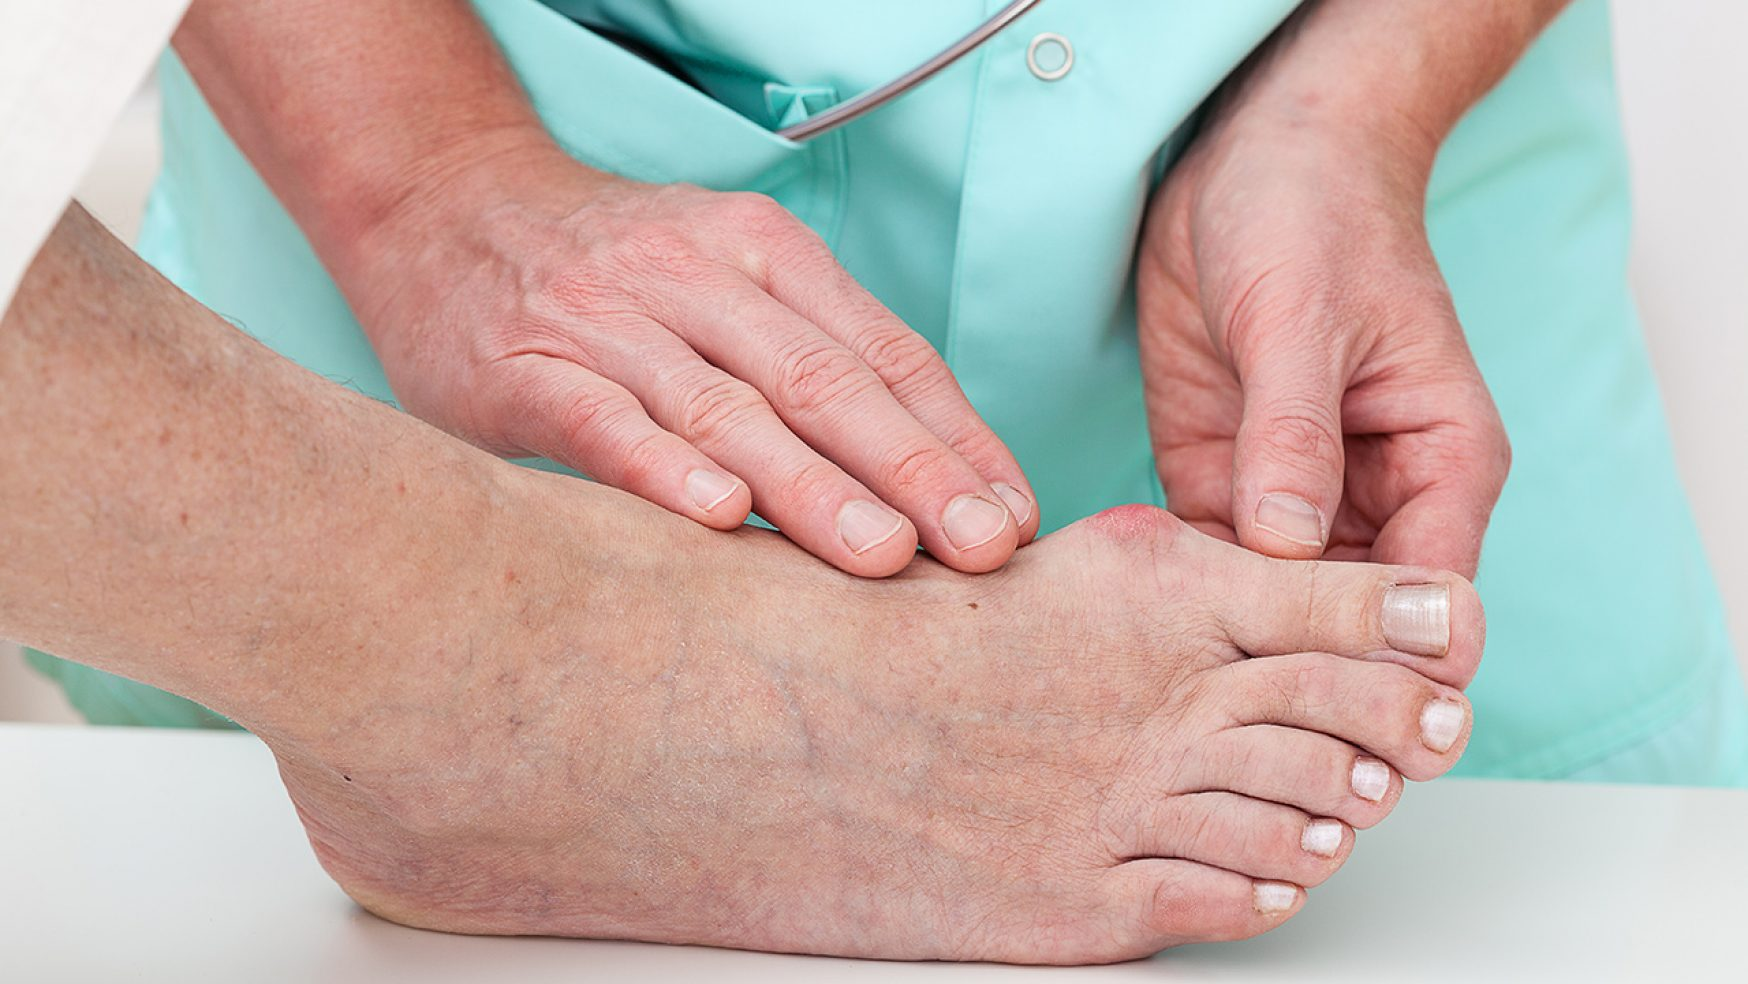 Study shows successful treatment for diabetic foot ulcers